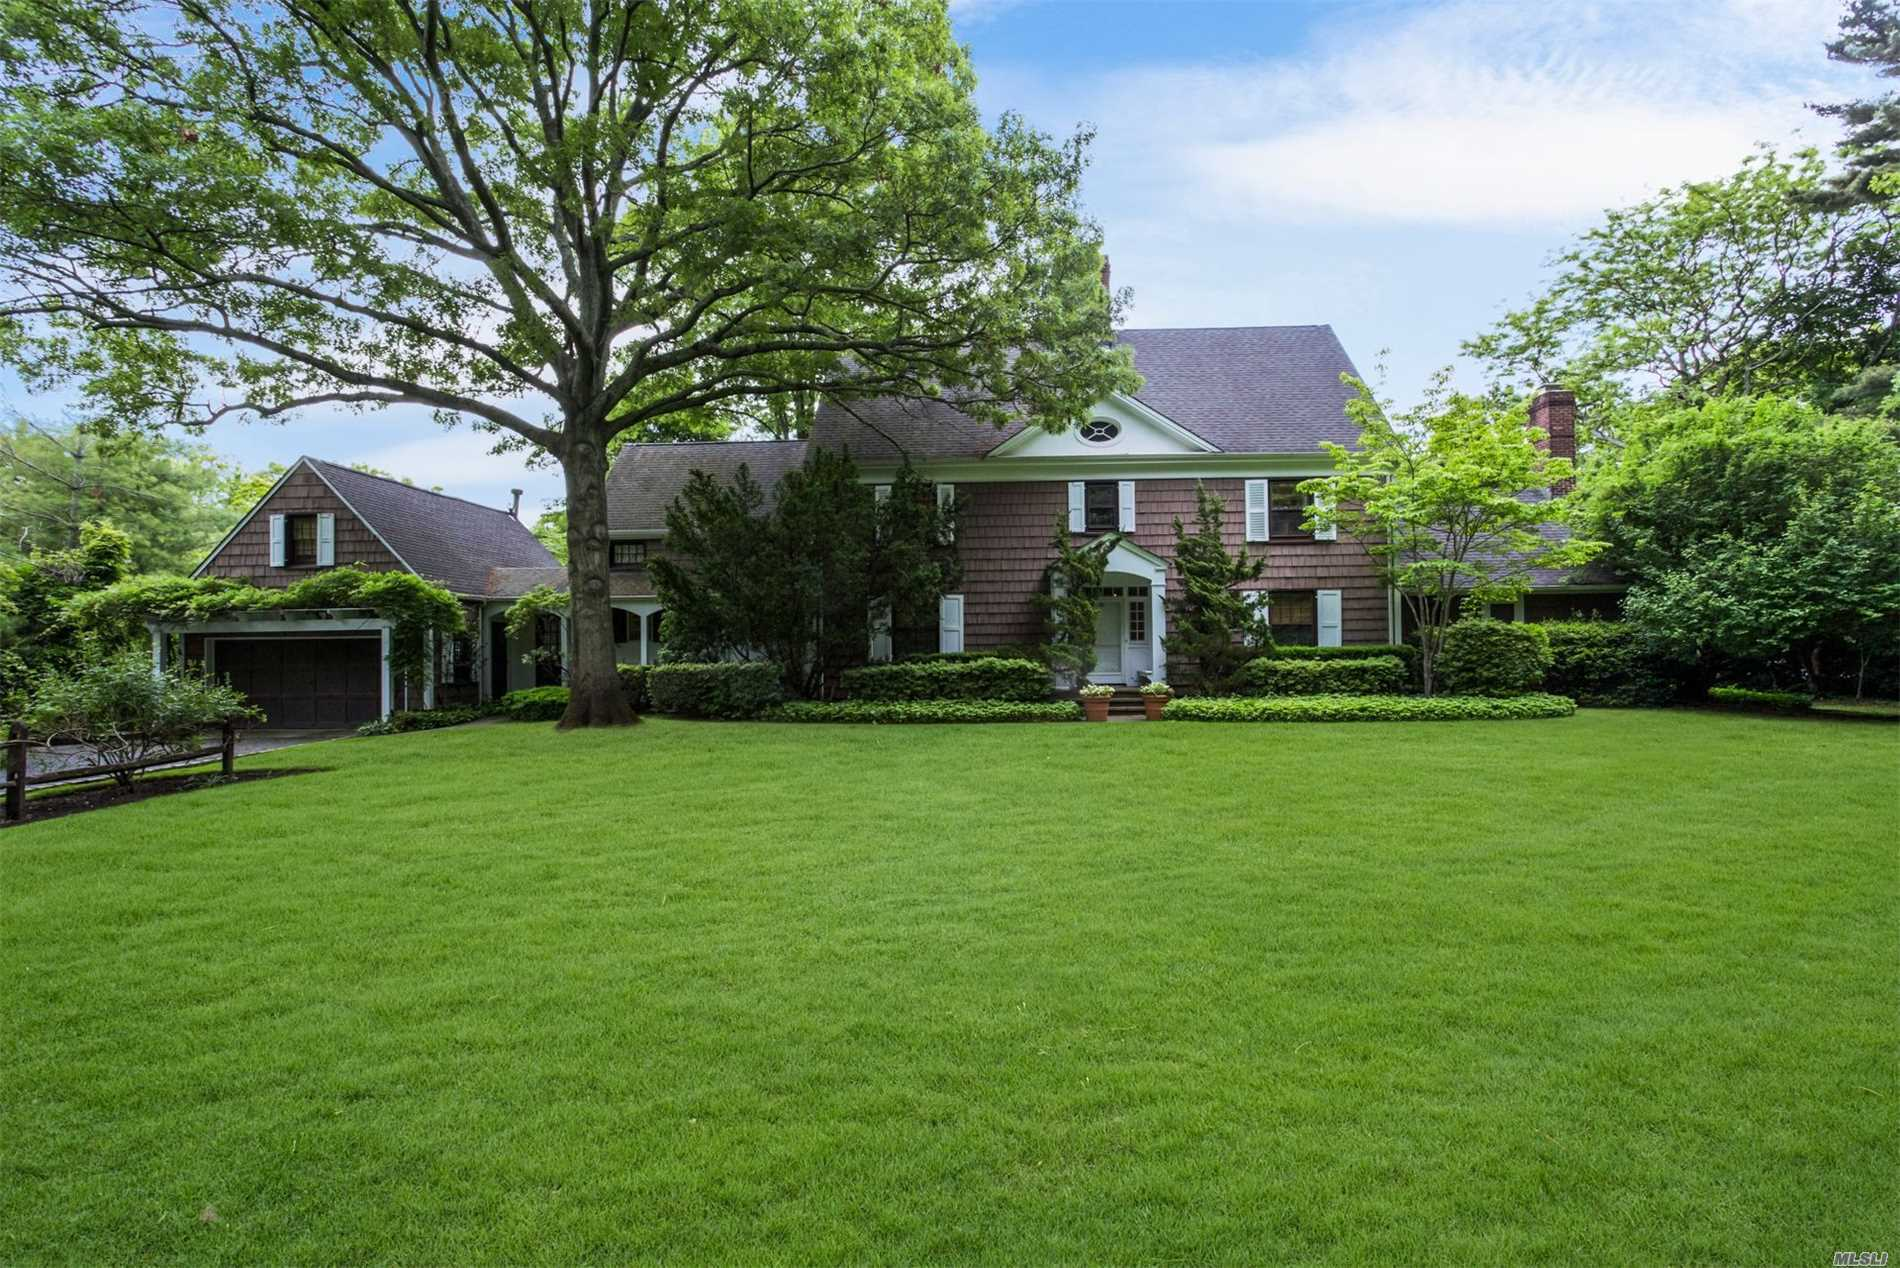 Private Driveway Leads To Traditional Colonial On Magnificant Property. Lovely Size Home With 3 Floors Of Great Family Space. The Home Has An Additional Studio Over Garage And Former Barn. Must See This One-A-Kind-Home!!!